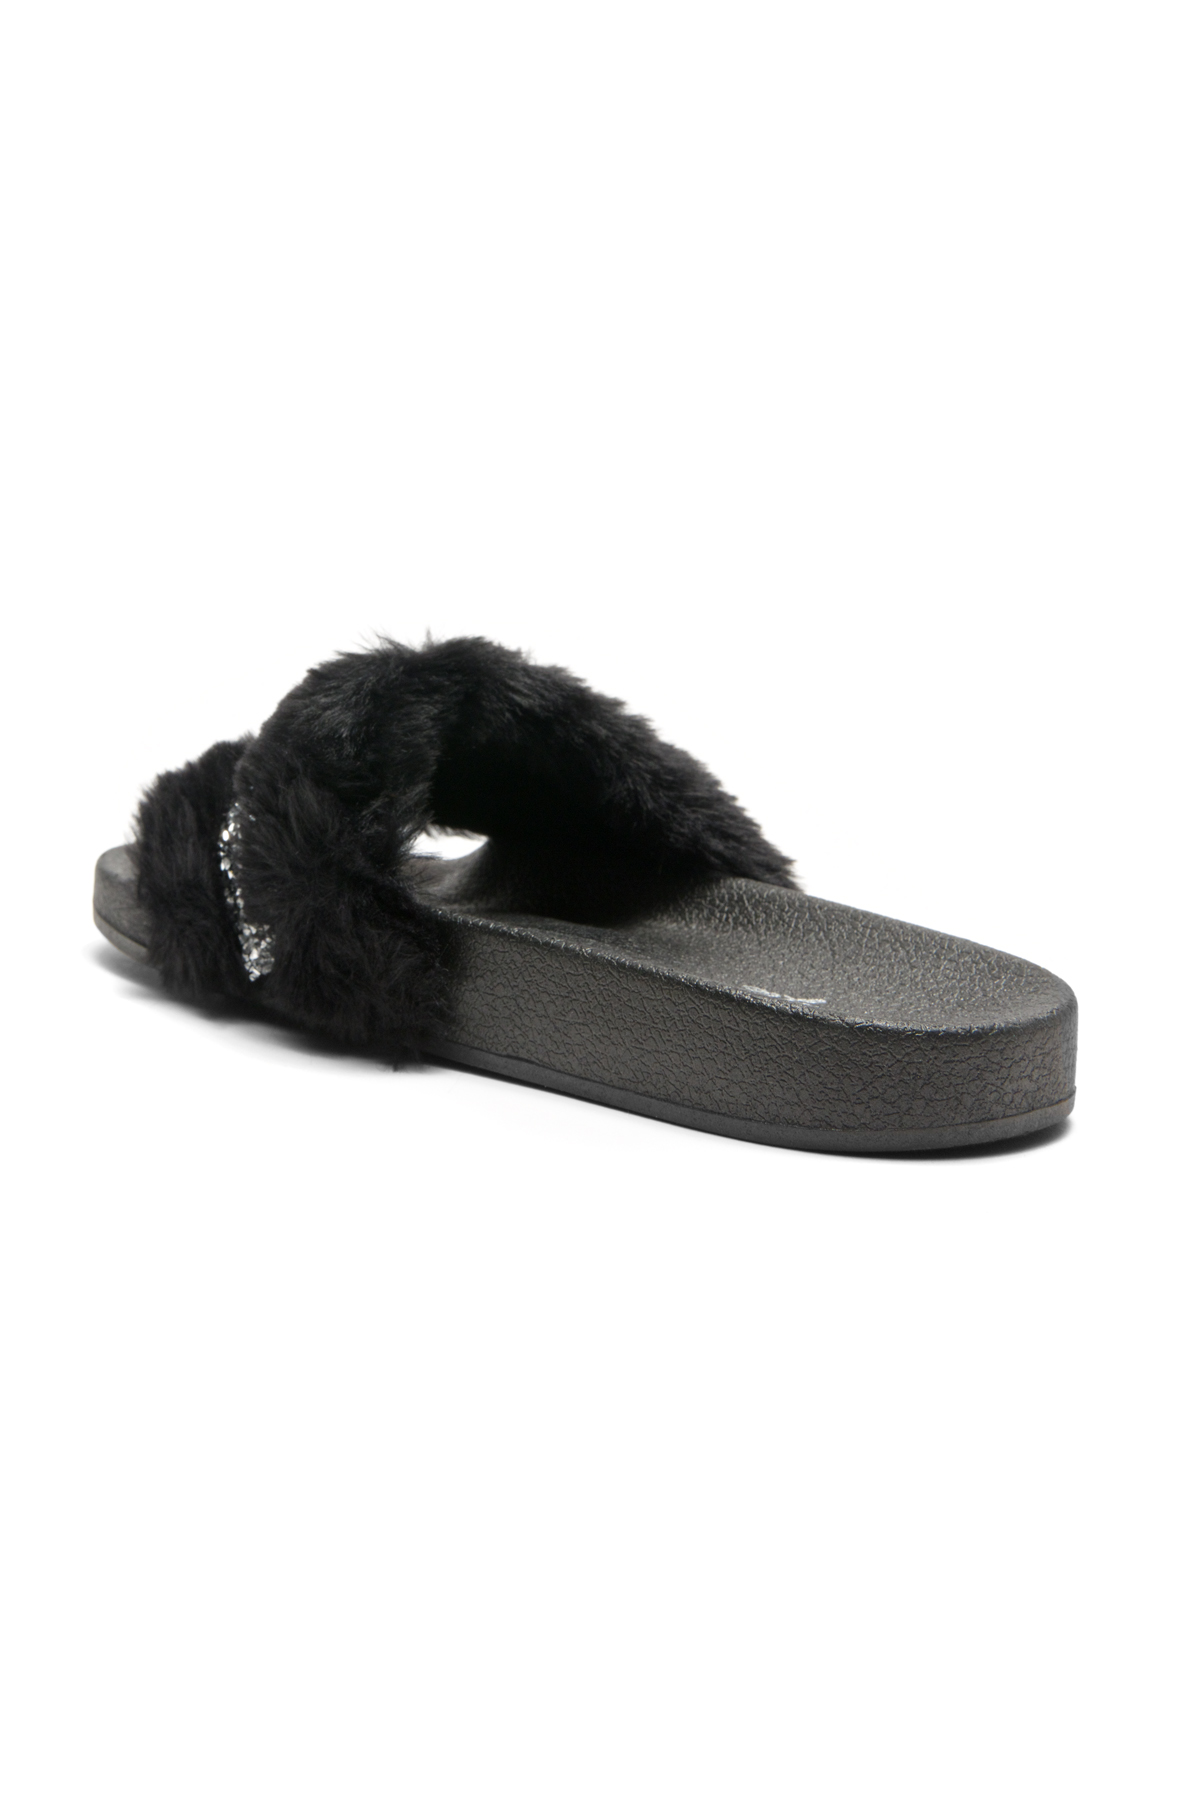 89f509a2d HerStyle SL-16110101 Faux Fur Slide Sandal with Rhinestone Accent (Black)